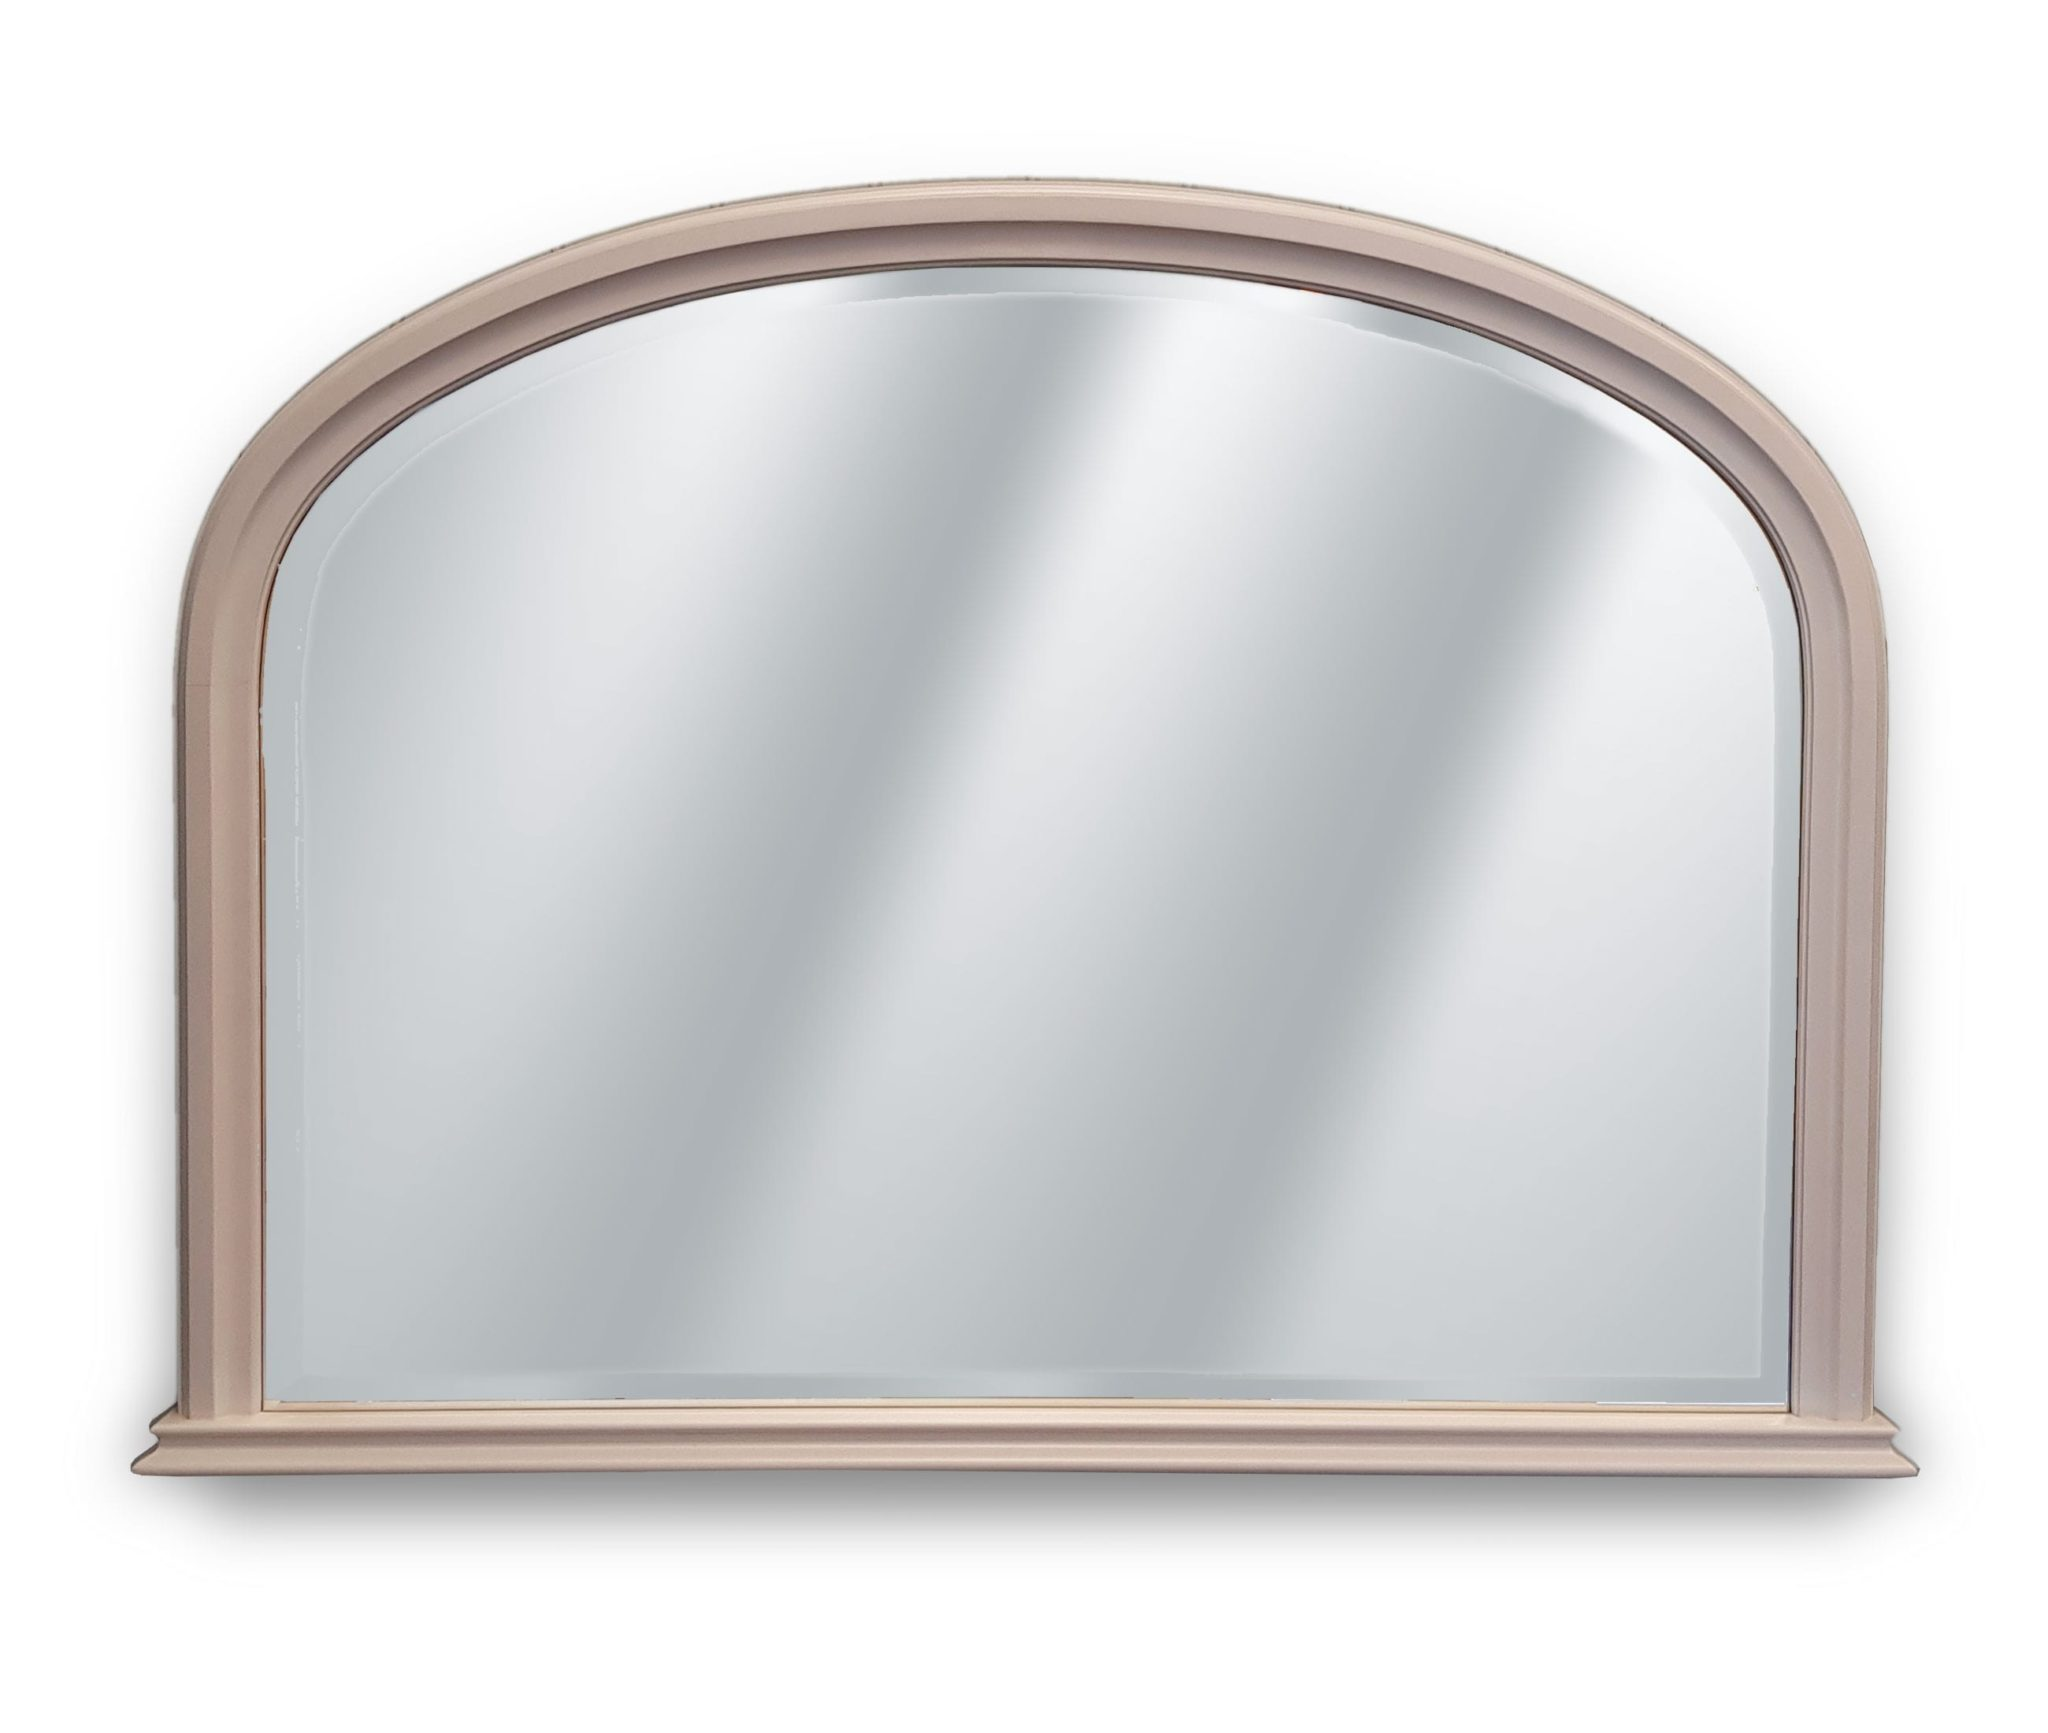 Painted Overmantle mirror, white frame